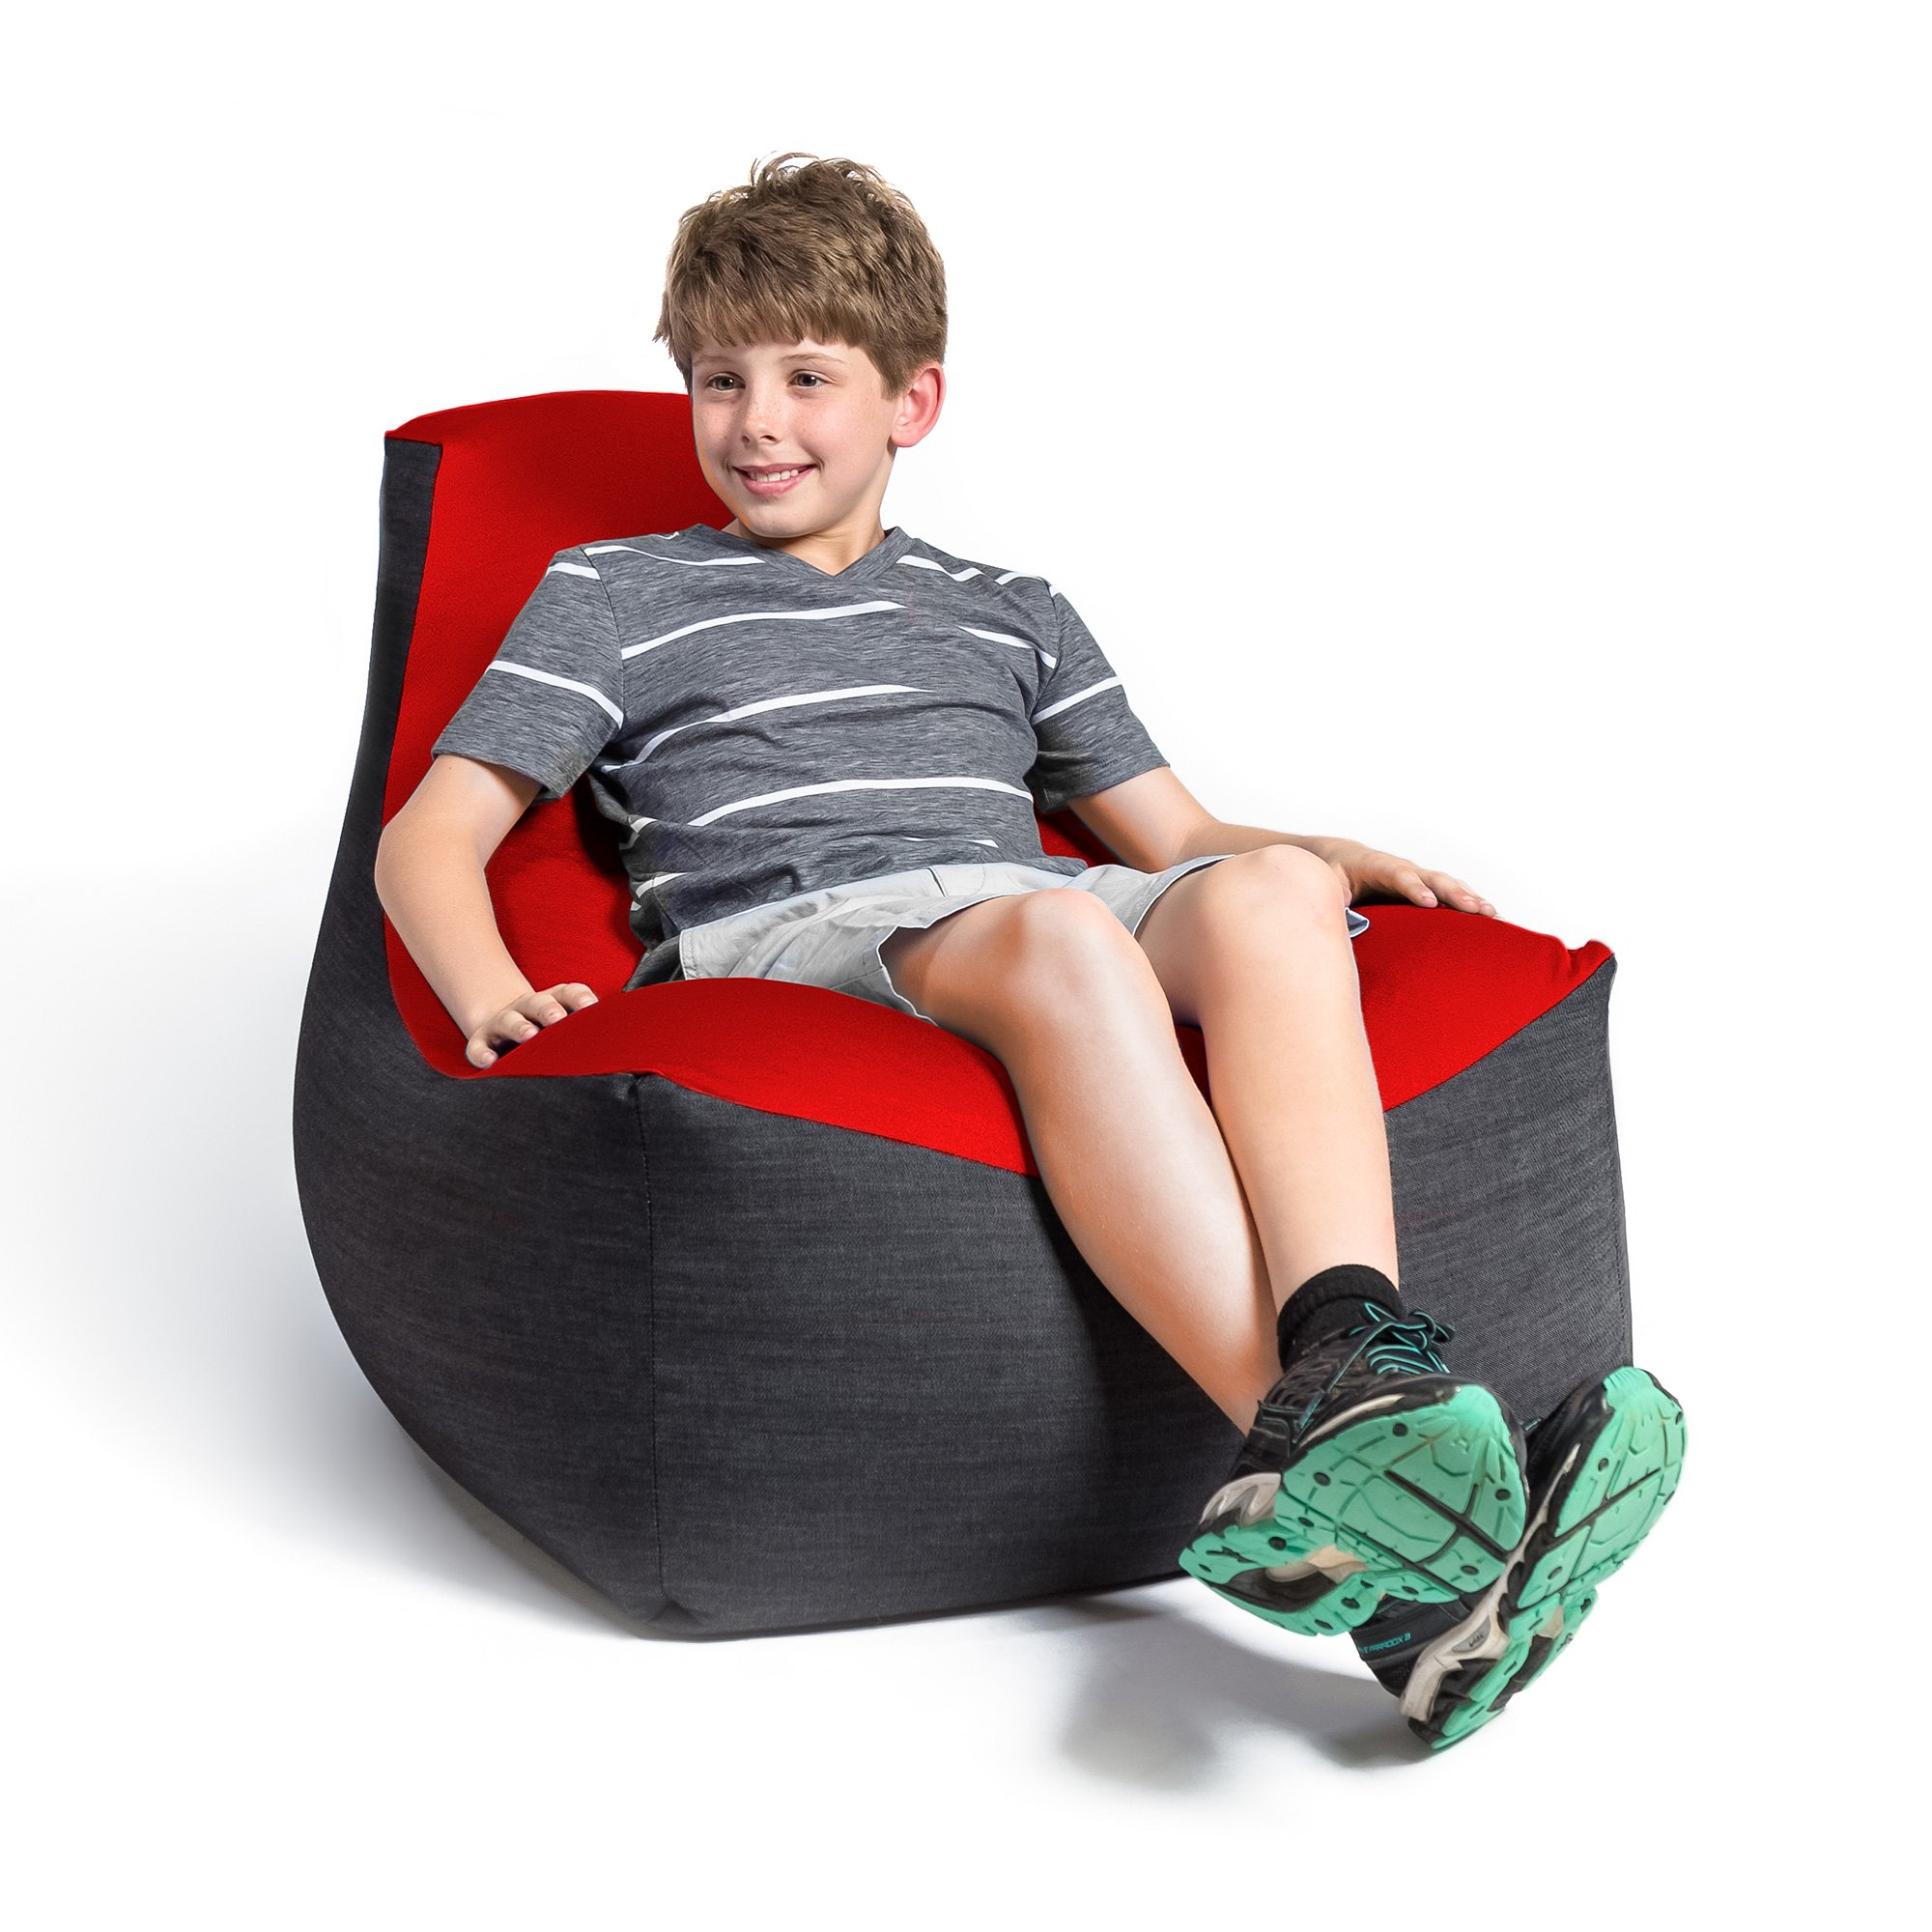 Jaxx Strato Spandex/Denim Bean Bag Chair for Teens, Cardinal